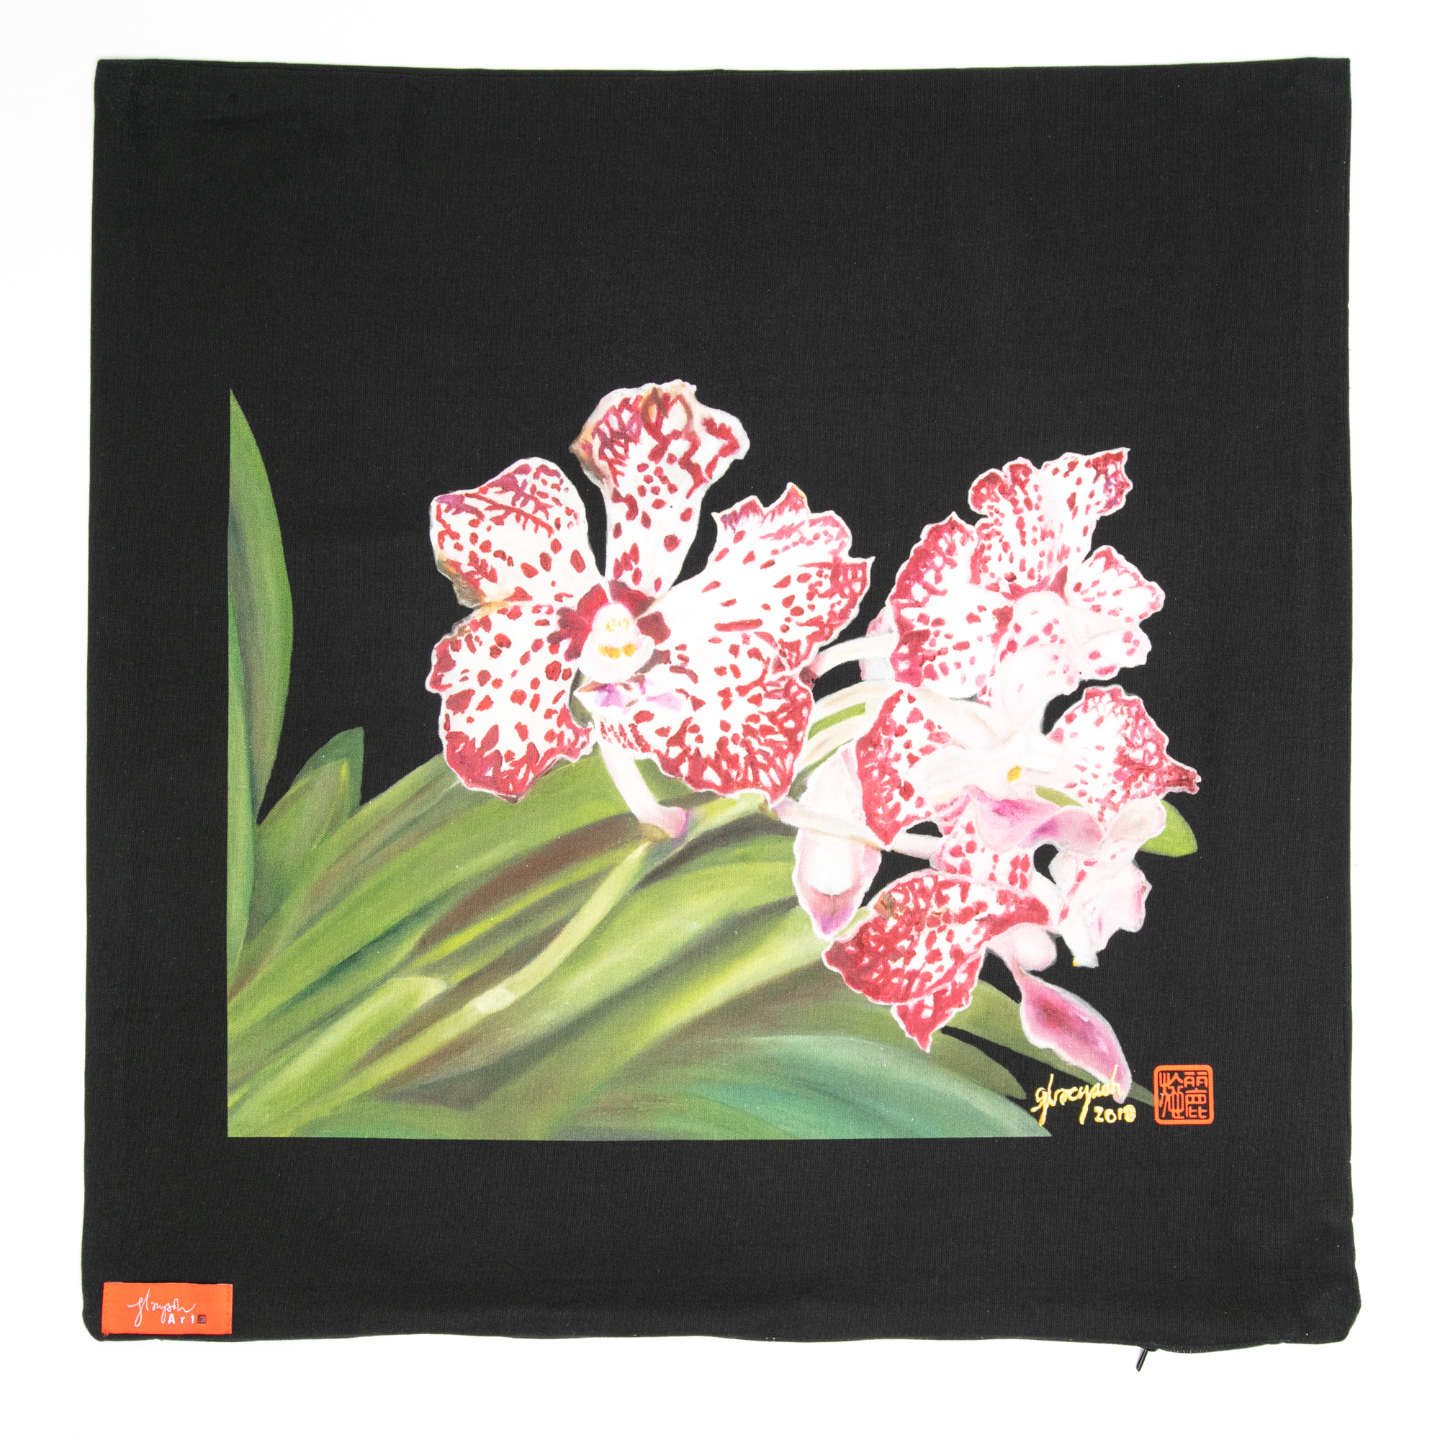 SOS 5 Orchids Cushion Cover - Vanda William Catherine